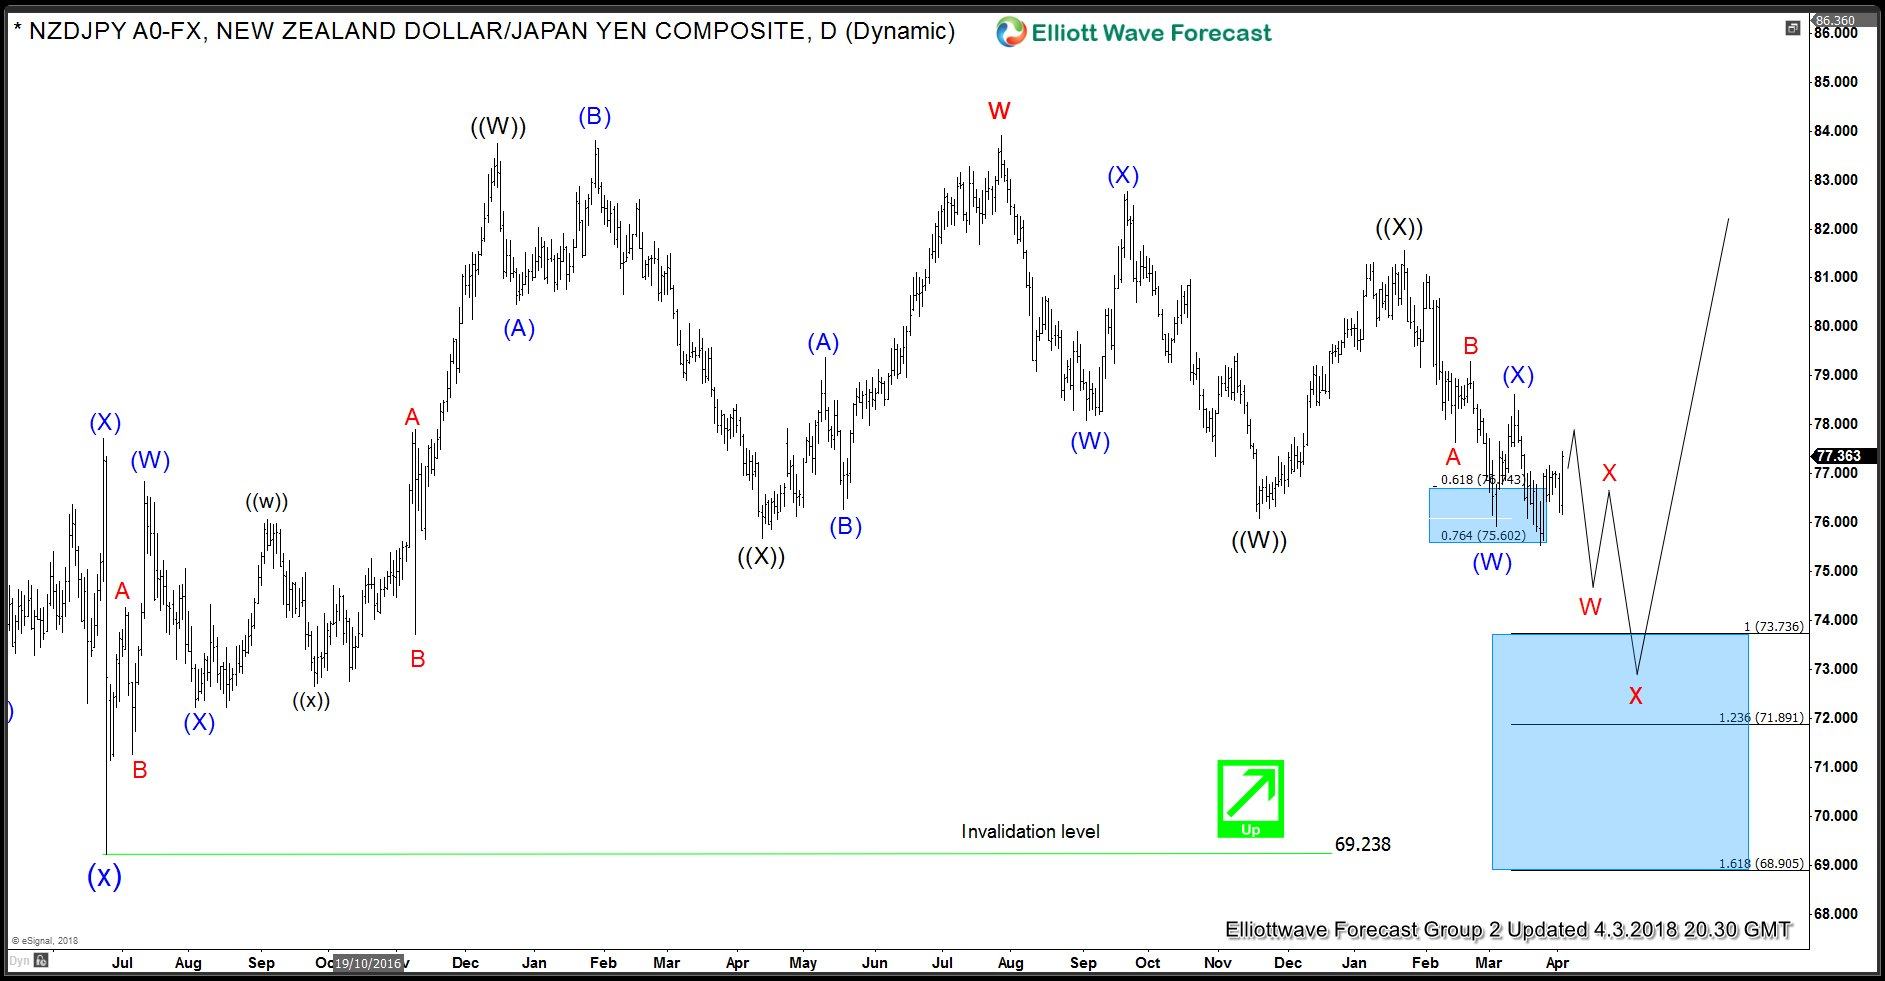 NZD JPY Daily Elliott Wave Analysis 4.3.2018